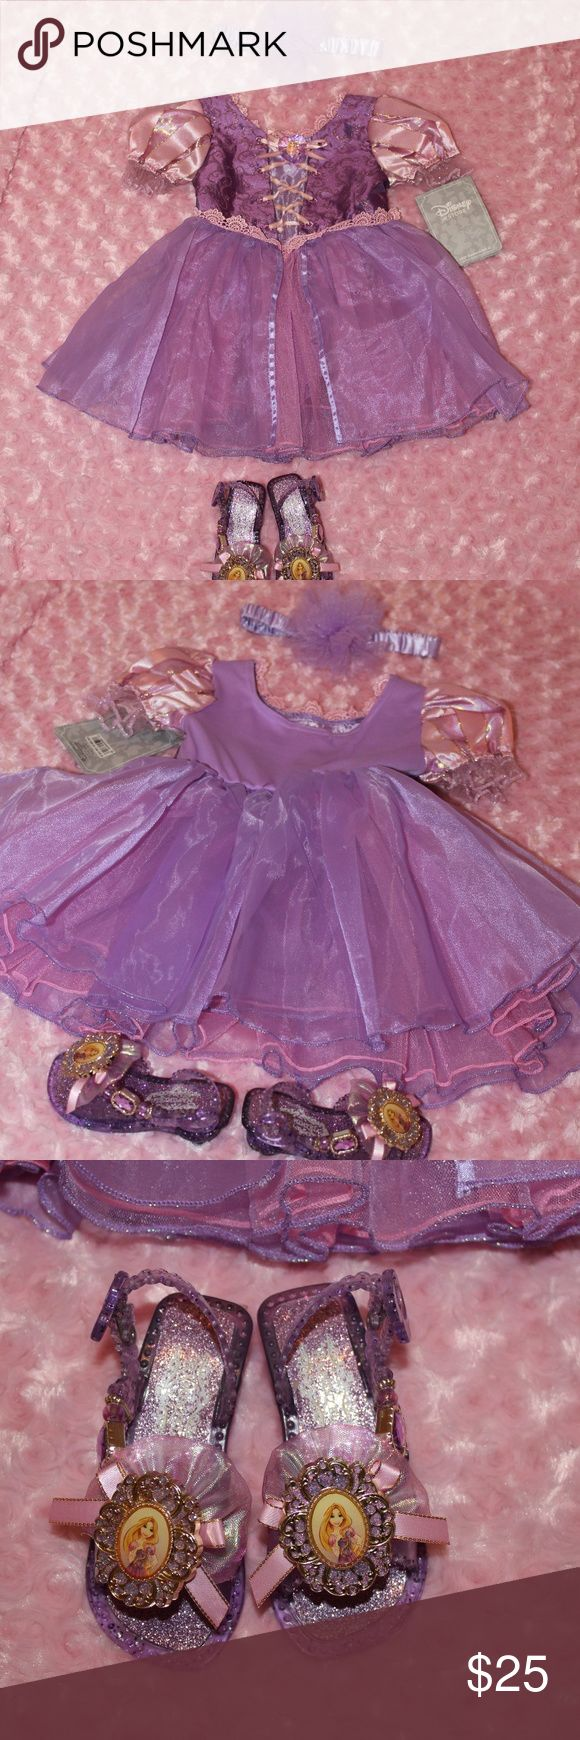 2T Rapunzel Disney Store costume Dress sz 2T Shoes sz 5/6 There are snags and holes in costume did my best to show. Several on front panels and back of purple lining. Shoes have glue on them. Overall cute costume. Shoes light up. Disney Store Costumes Halloween